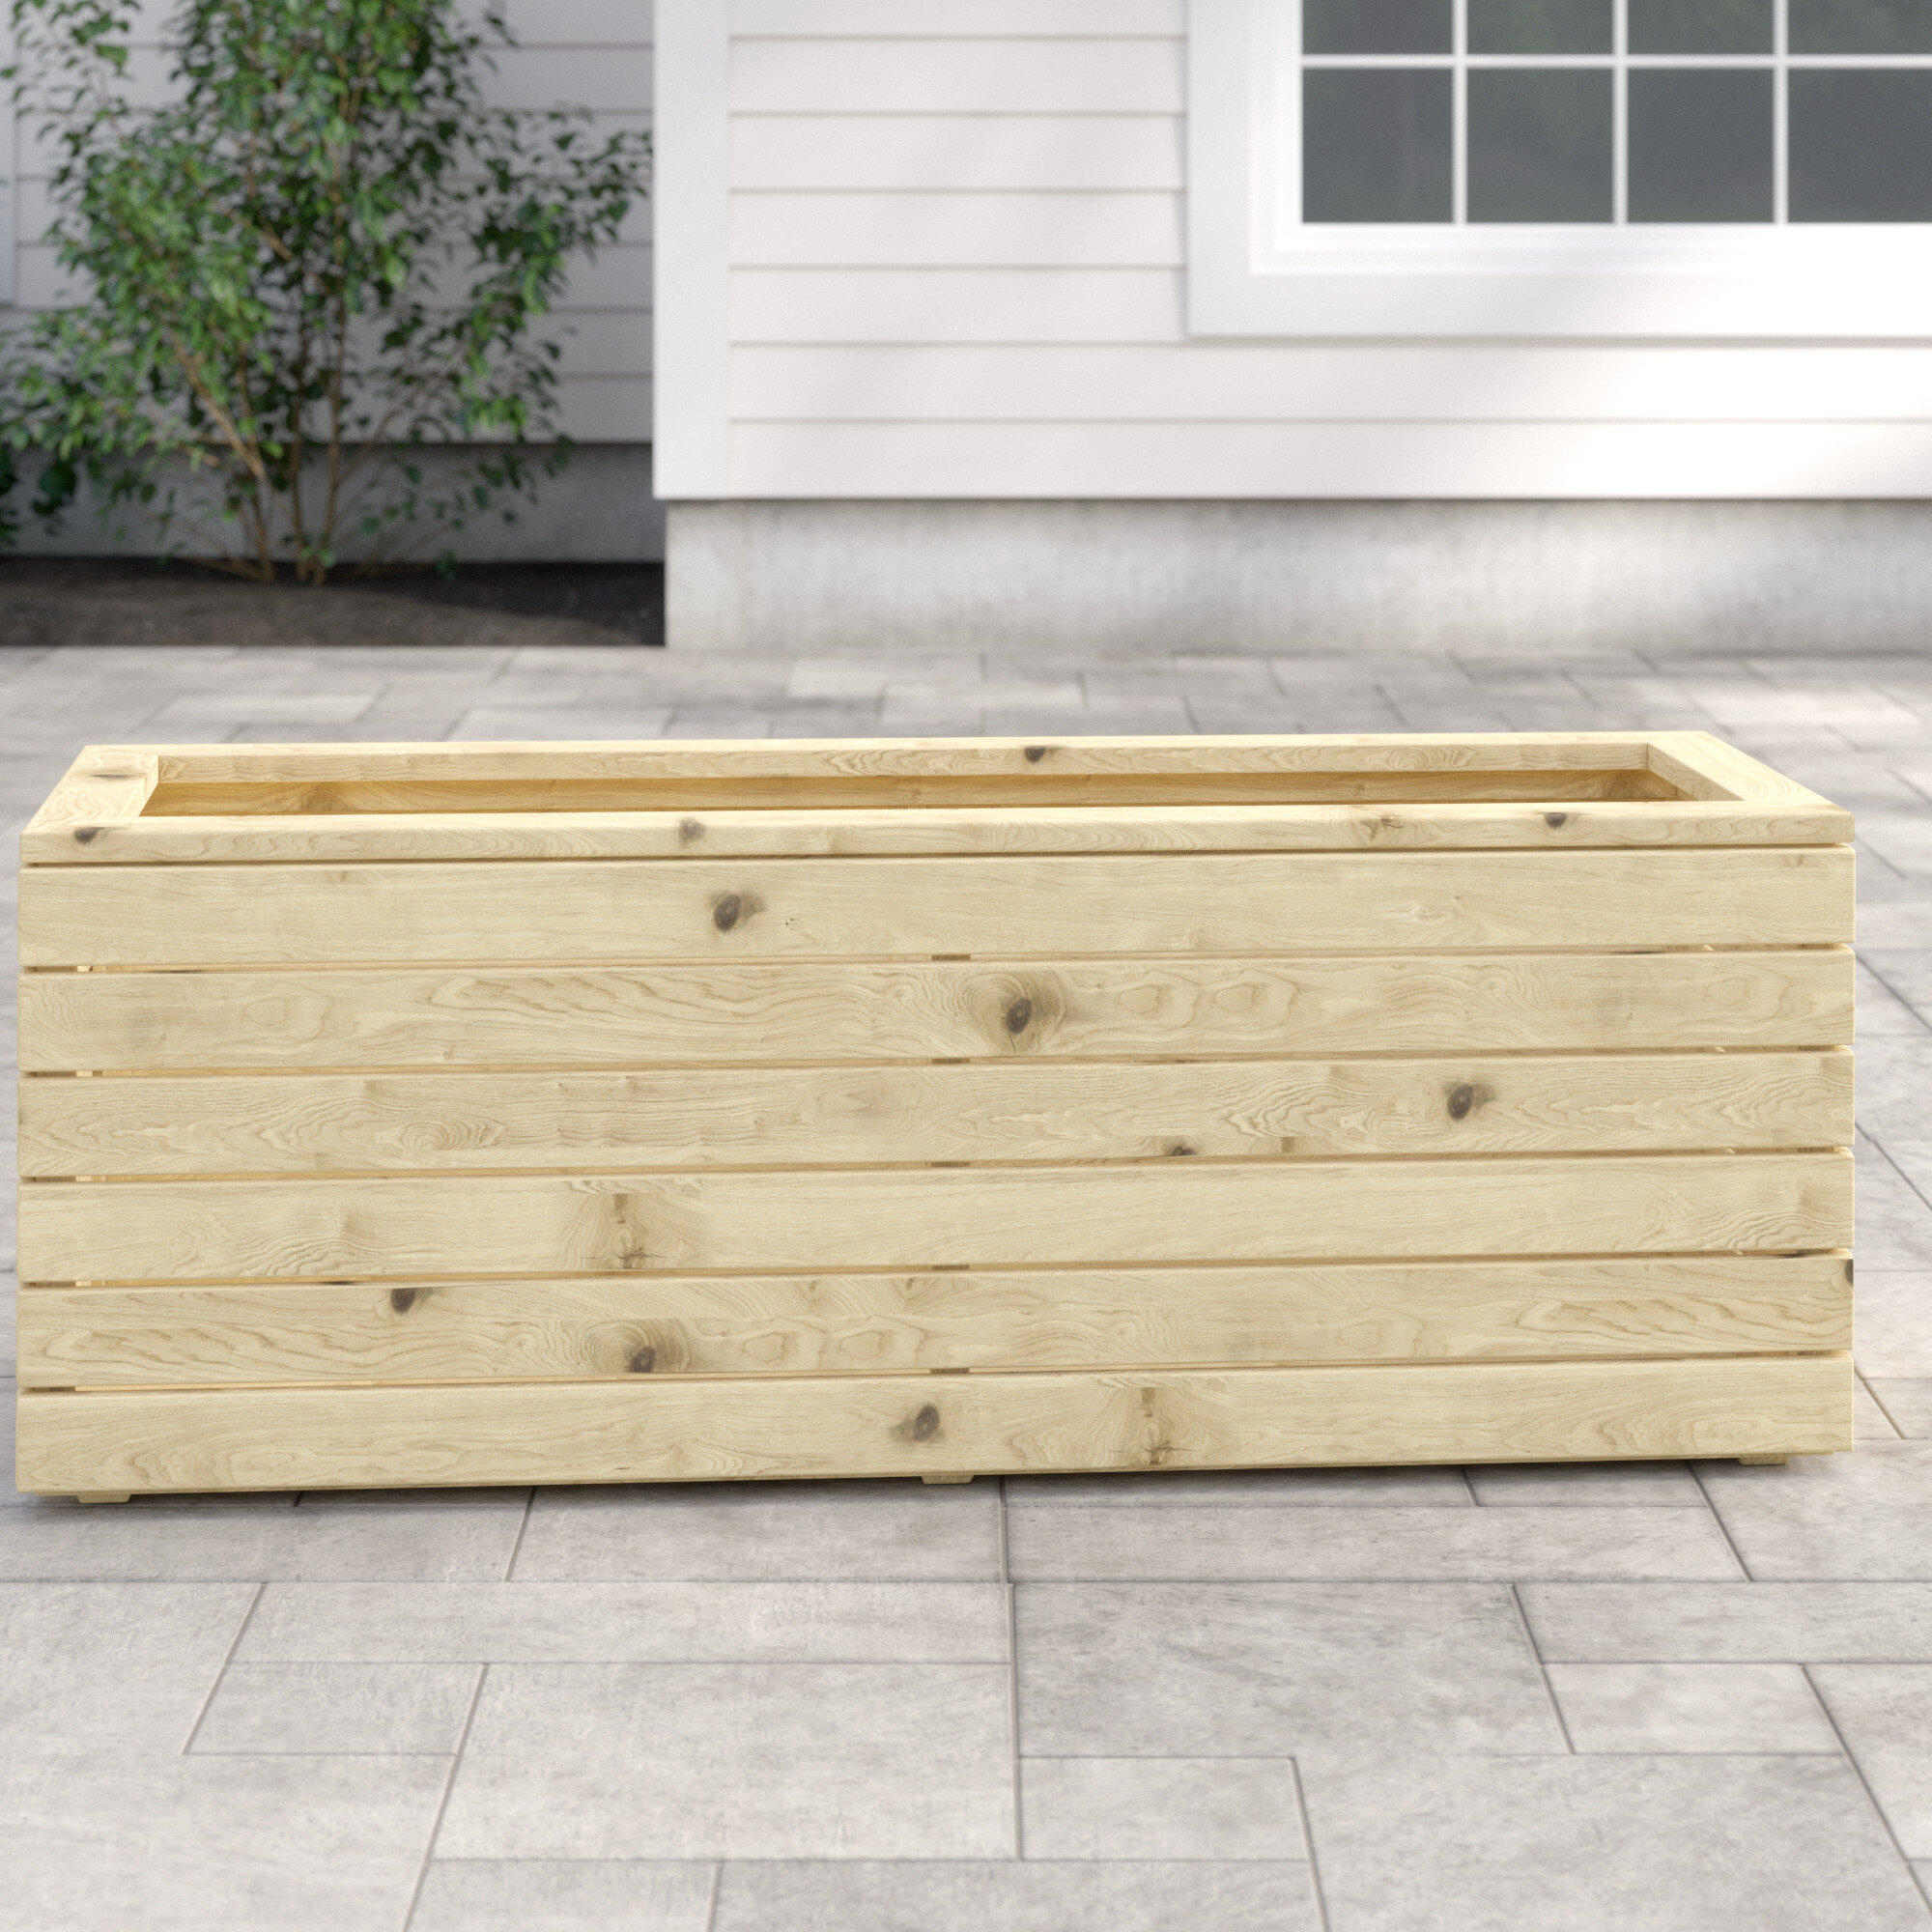 Bel Etage Linear Wooden Planter Box Reviews Wayfair Co Uk